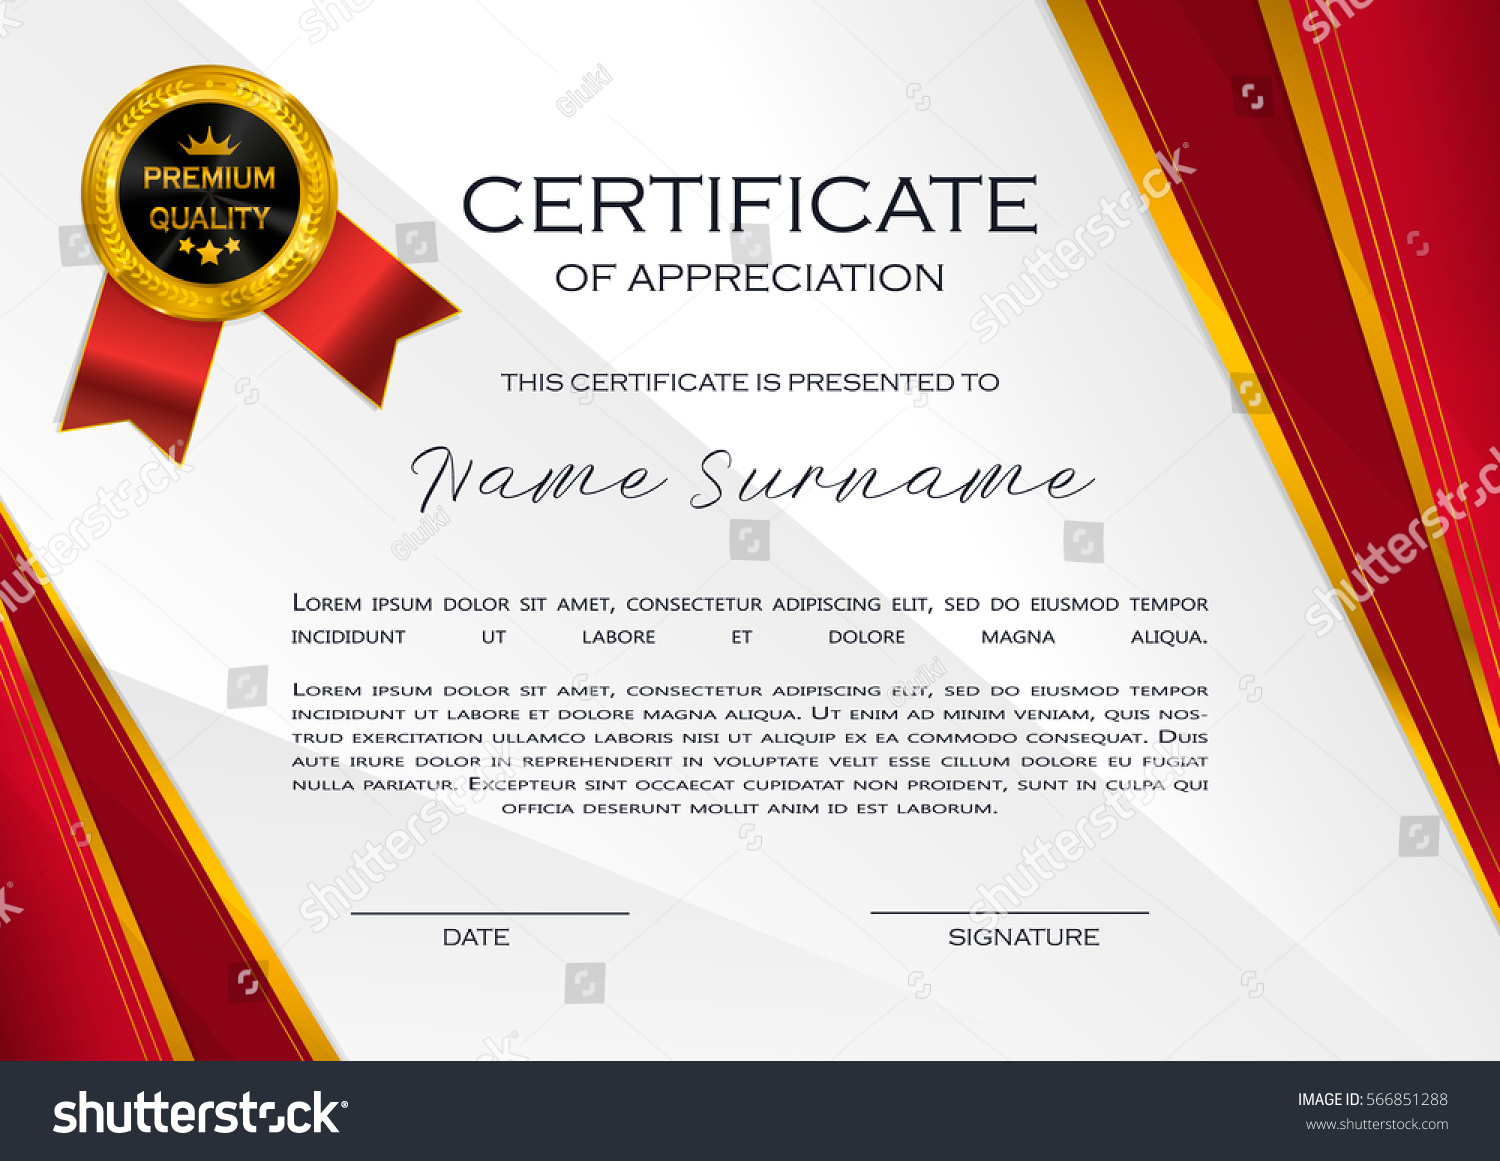 Qualification certificate appreciation design elegant luxury stock qualification certificate of appreciation design elegant luxury and modern pattern best quality award template yadclub Images